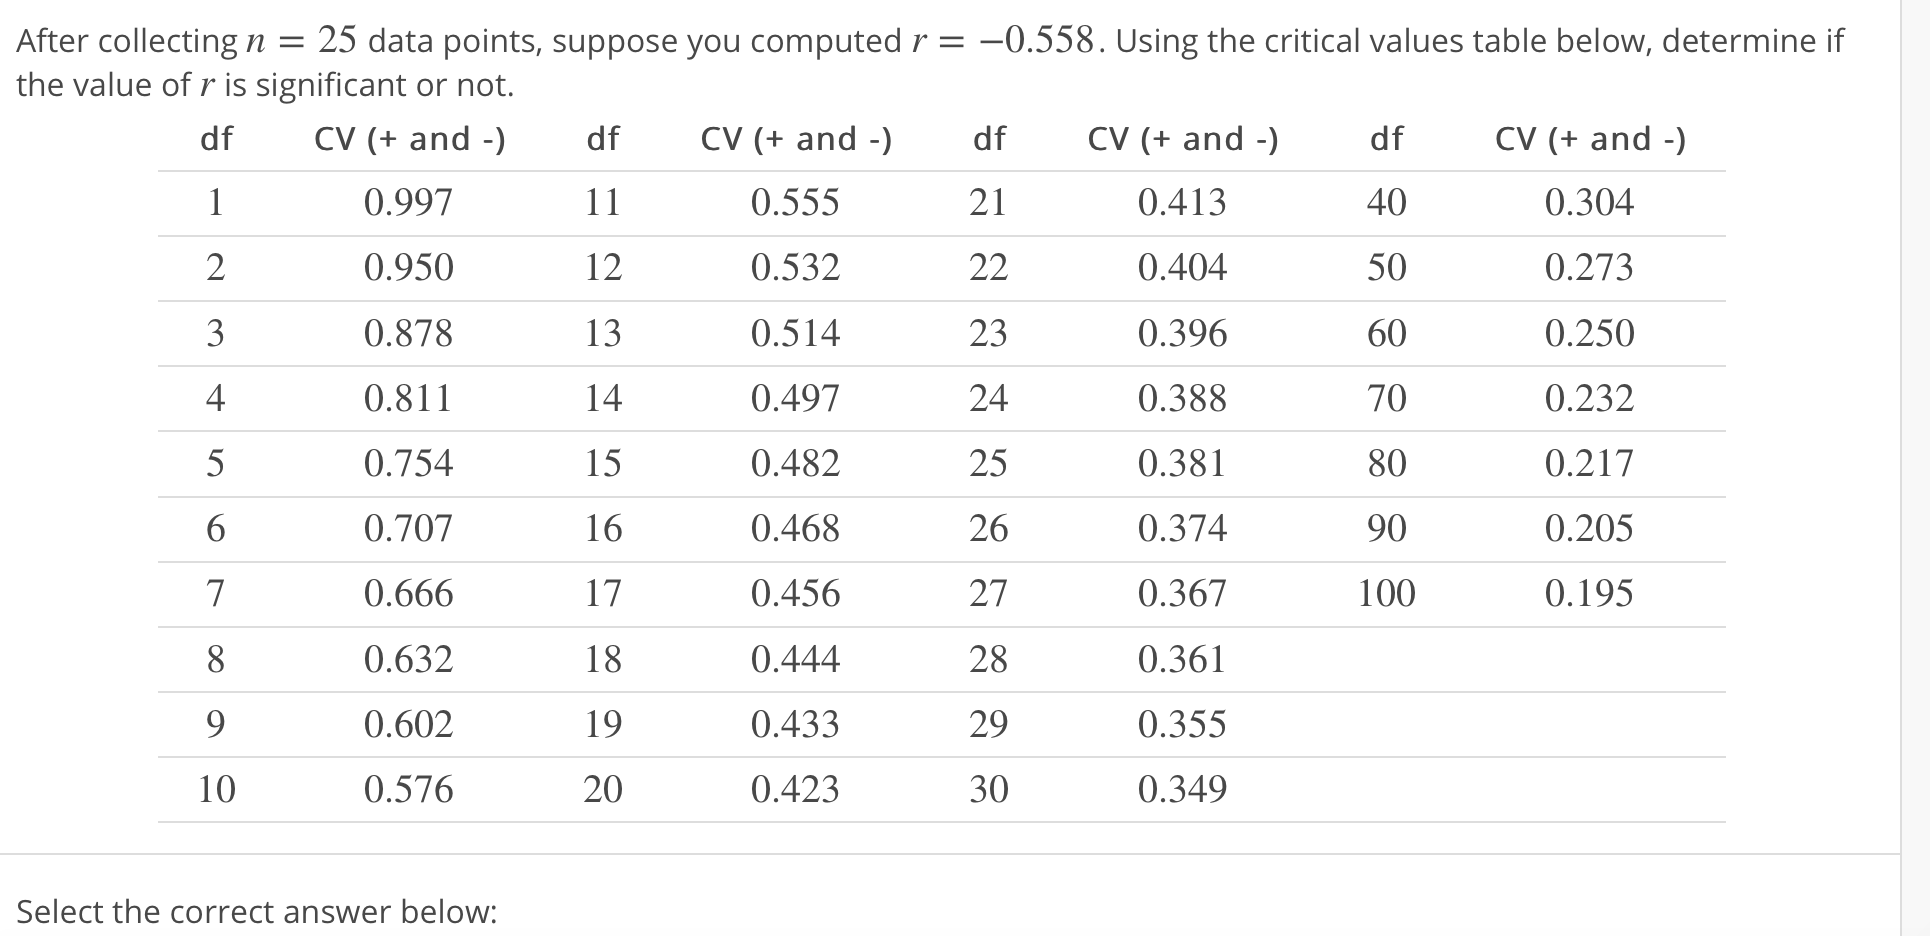 After collecting n = 25 data points, suppose you computed r the value of r is significant or not. -0.558. Using the critical values table below, determine if df 40 50 60 70 80 90 100 df CV (+ and 0.997 0.950 0.878 0.811 0.754 0.707 0.666 0.632 0.602 0.576 df CV (+ and - dfCV (+ and -) CV (+ and -) 0.304 0.273 0.250 0.232 0.217 0.205 0.195 21 0.555 0.532 0.514 0.497 0.482 0.468 0.456 0.444 0.433 0.423 0.413 0.404 0.396 0.388 0.381 0.374 0.367 0.361 0.355 0.349 12 2 3 4 13 23 24 25 26 27 28 29 30 15 16 17 18 19 20 10 Select the correct answer below: